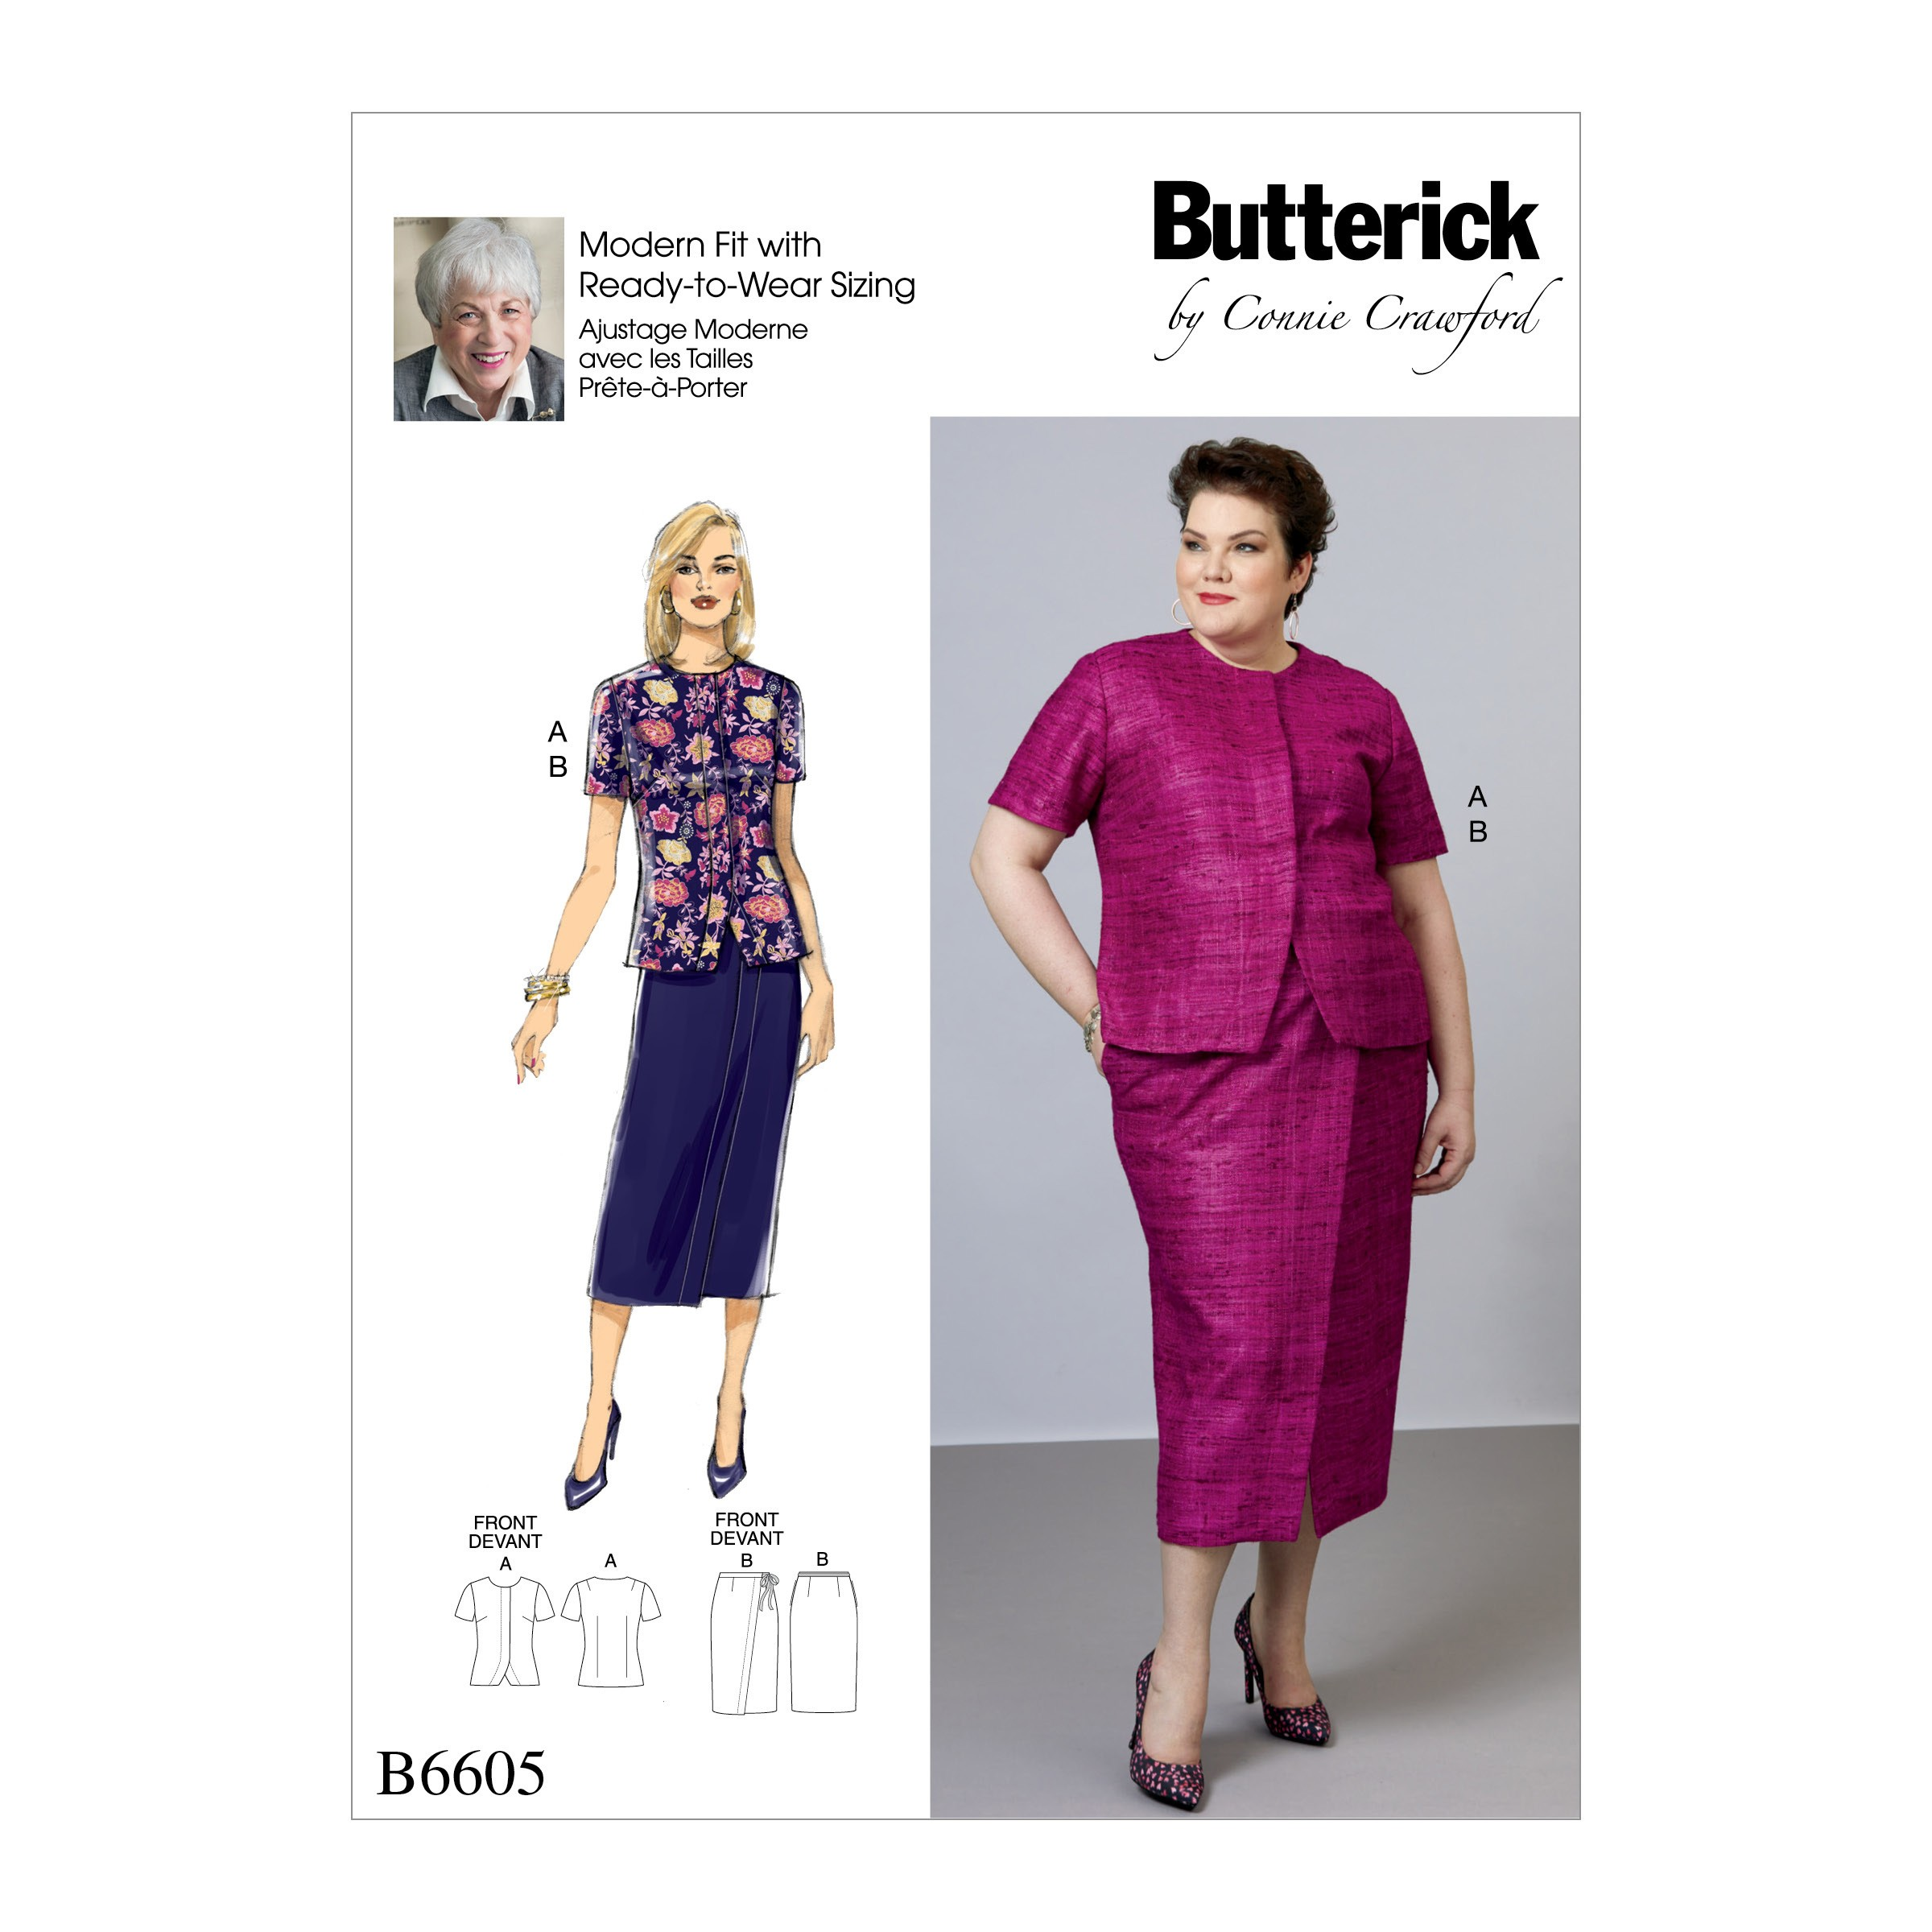 Butterick Sewing Pattern 6605 Misses' and Women's Blouse and Wrap Skirt